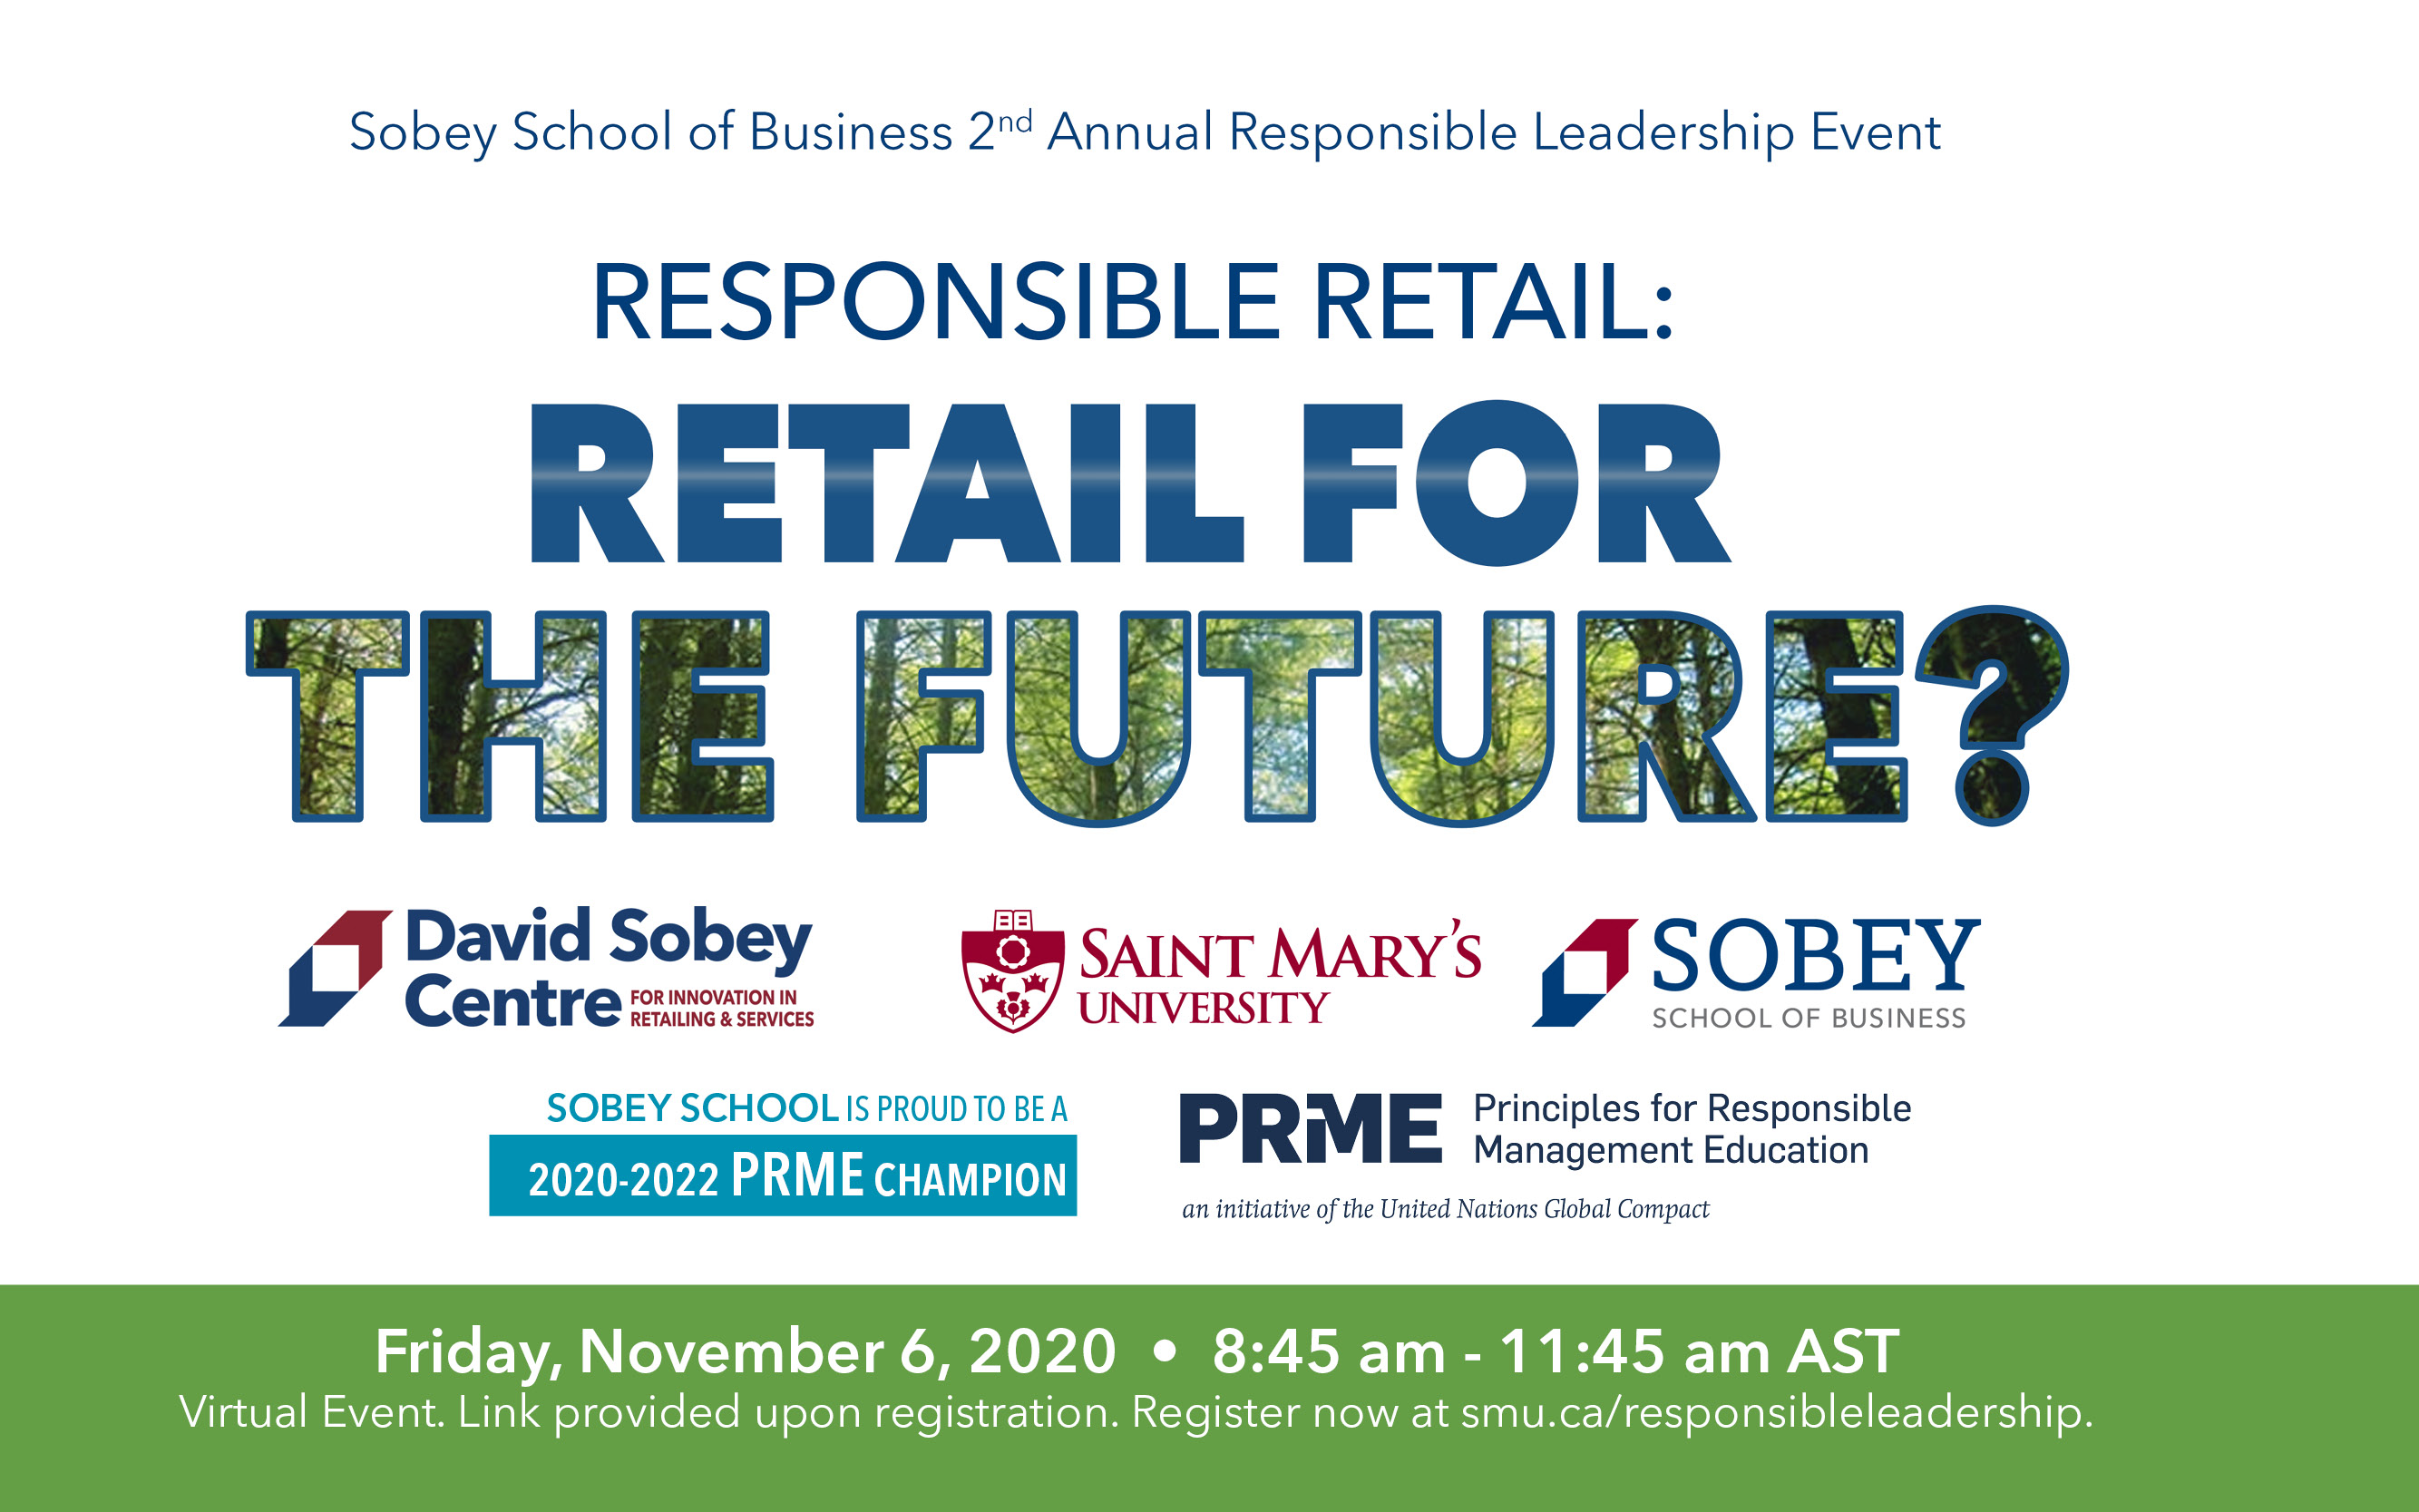 Sobey School Responsible Leadership Event, Friday, Nov. 6, 8:45am. Register now.